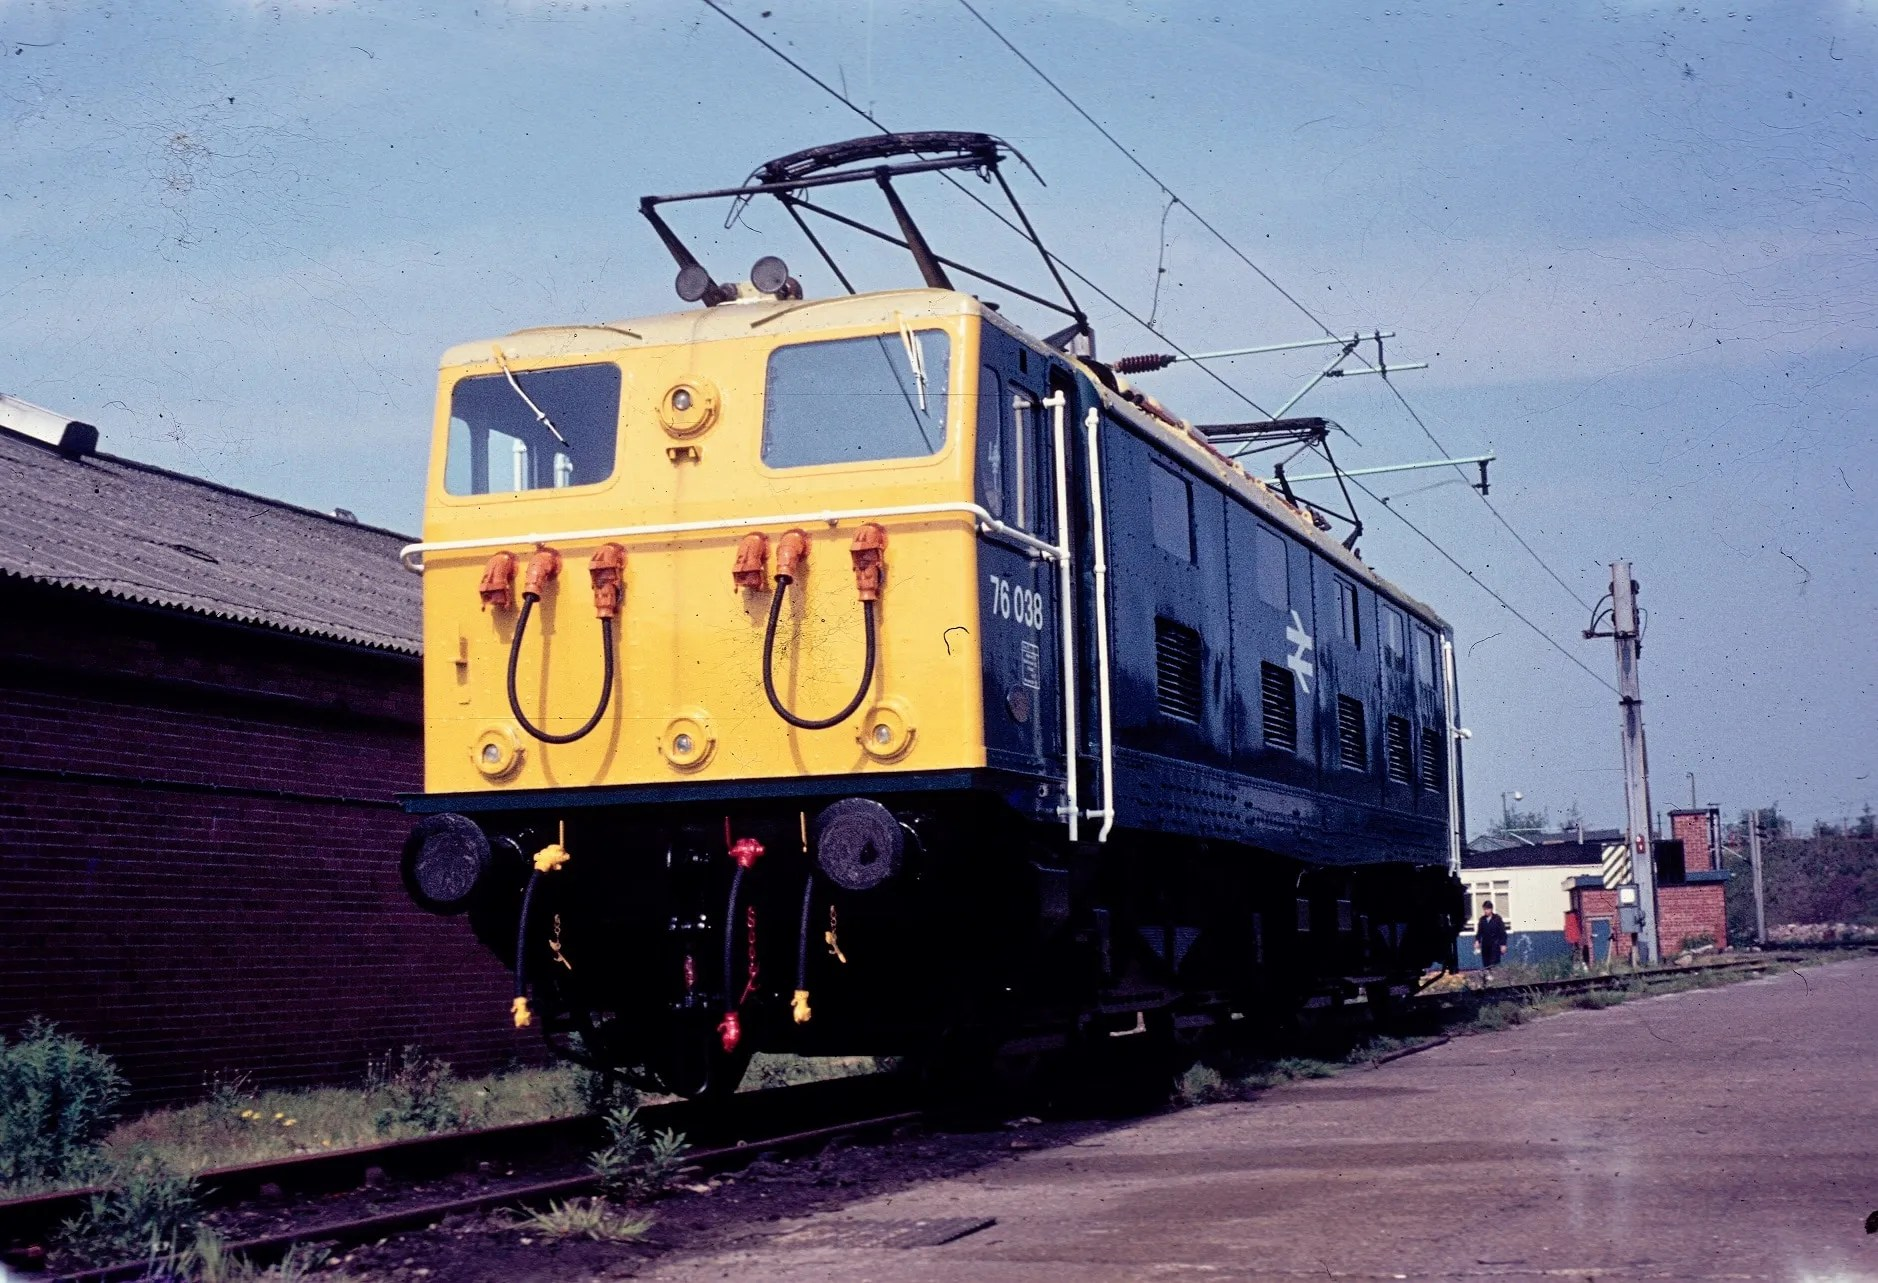 Class 76 locomotive at Crewe Works